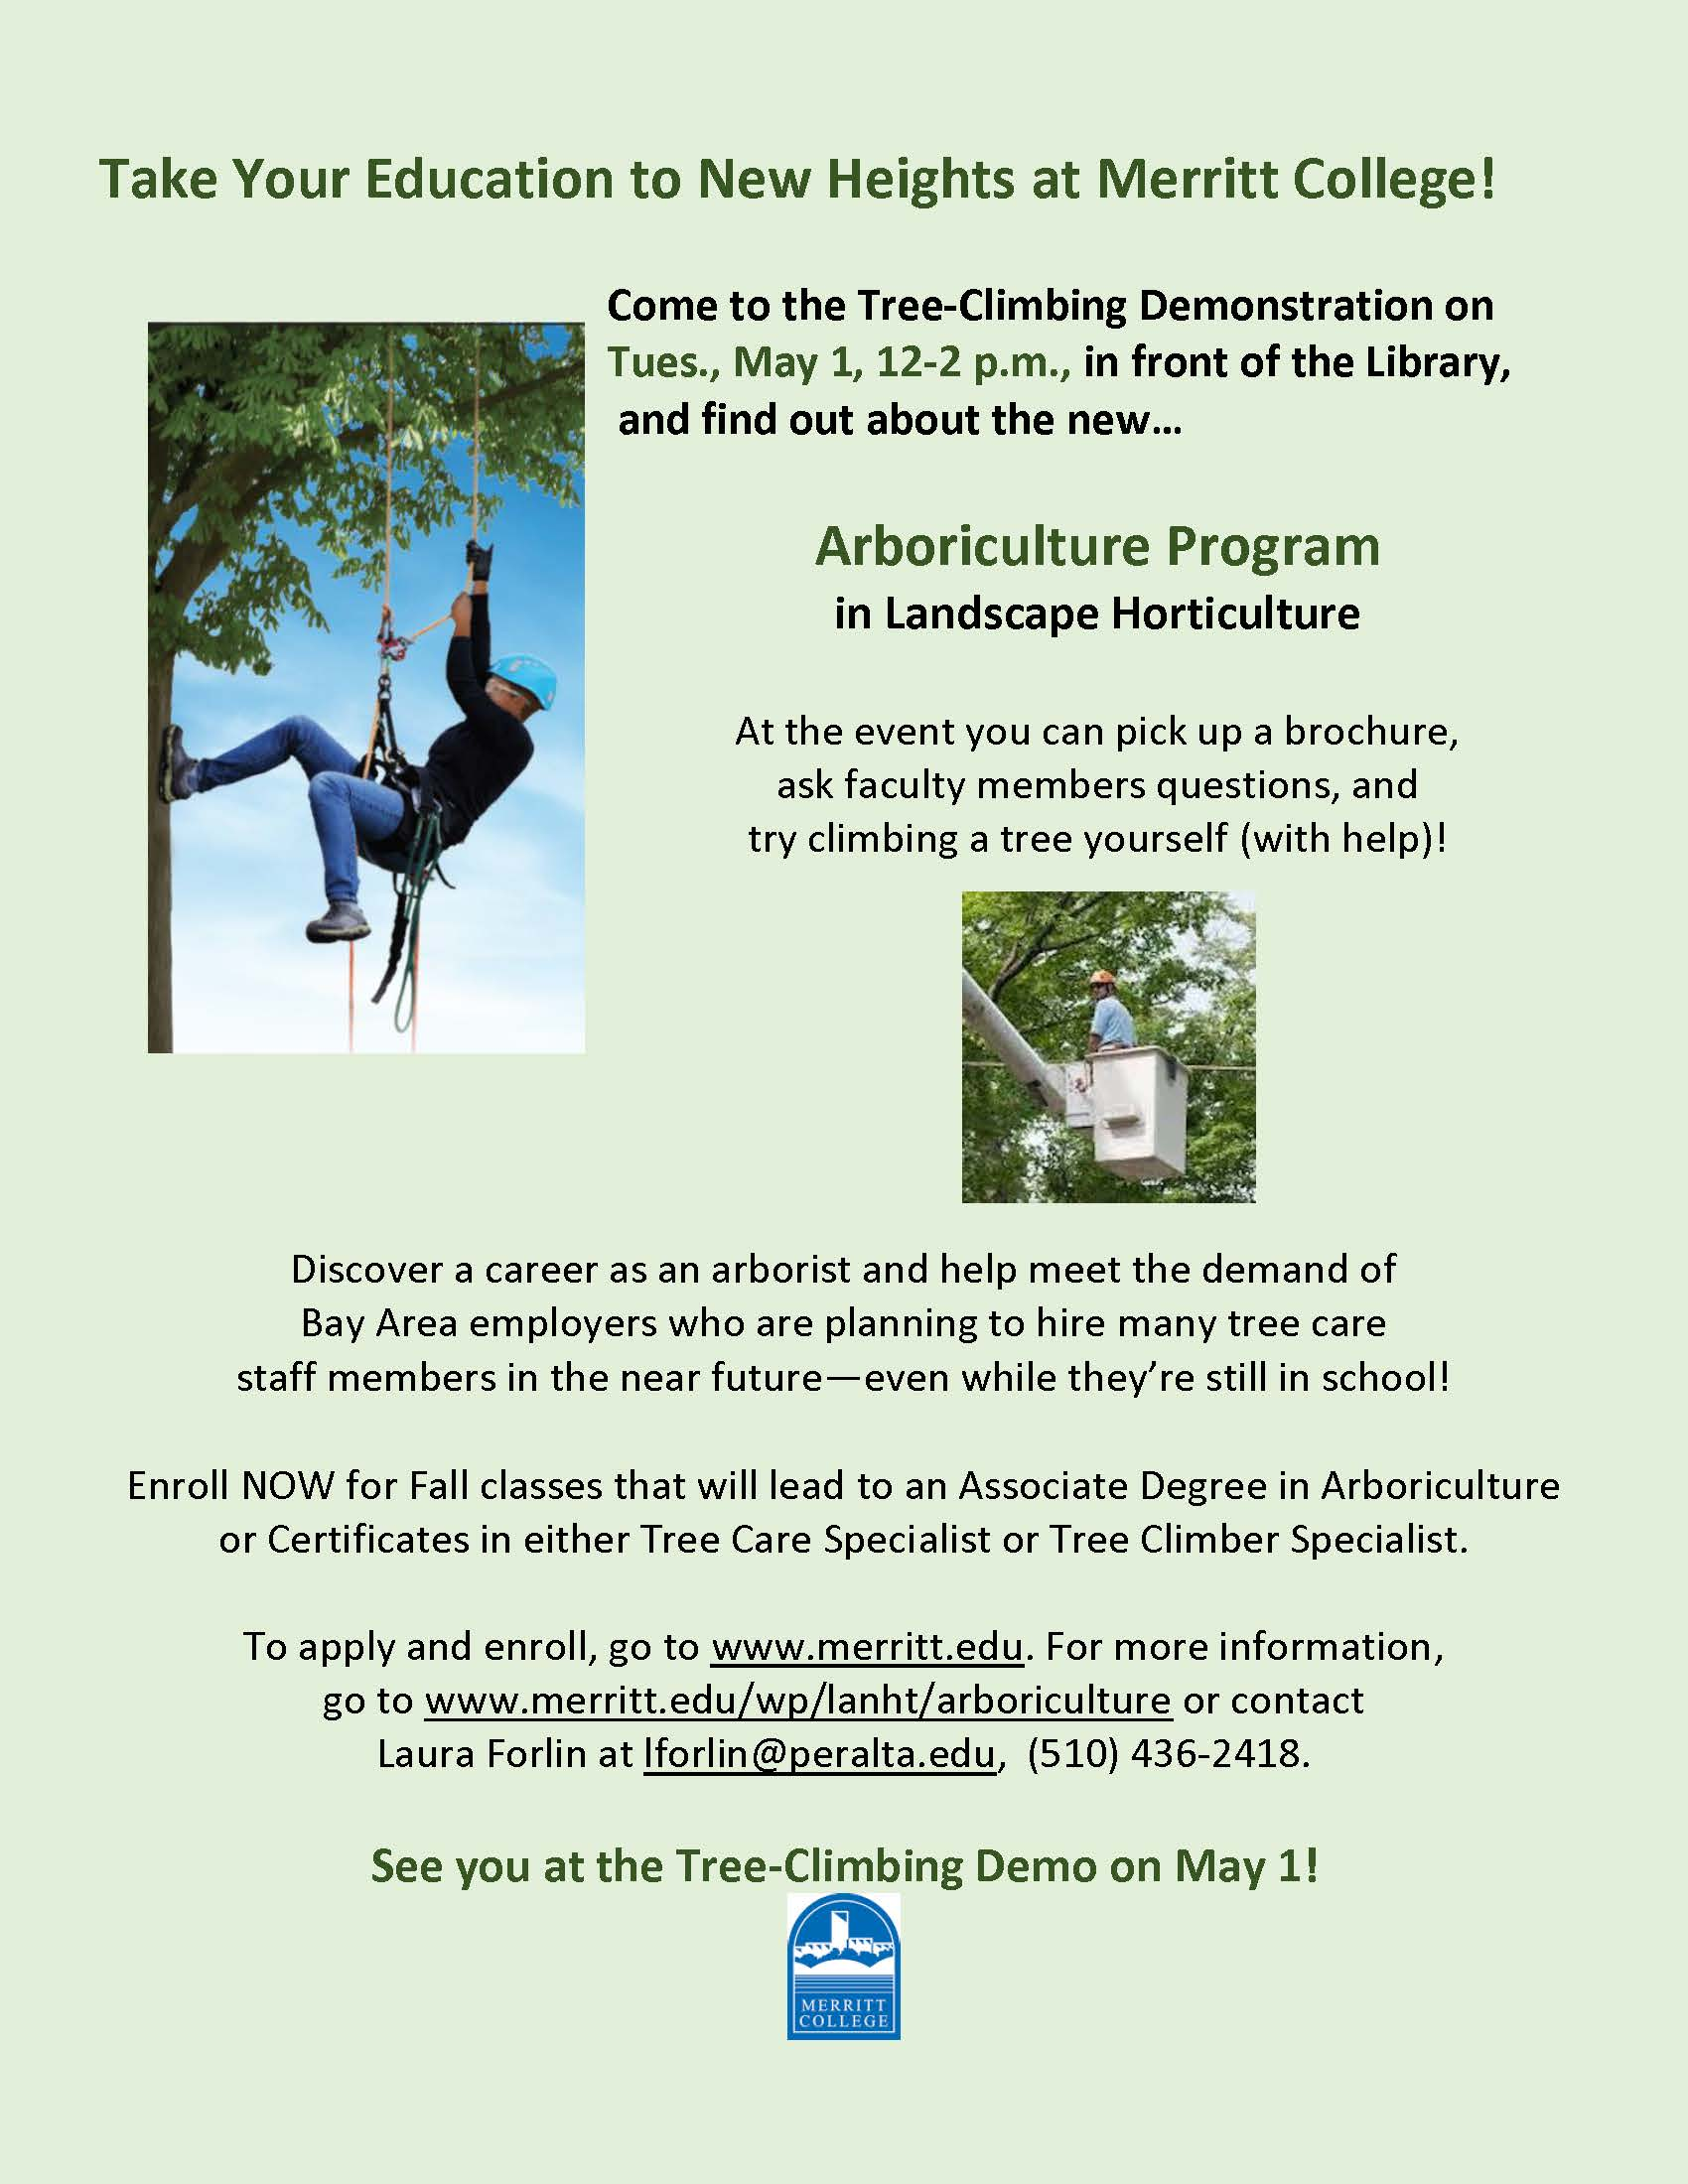 Tree Climbing Demo On Campus 51 To Announce New Arboriculture